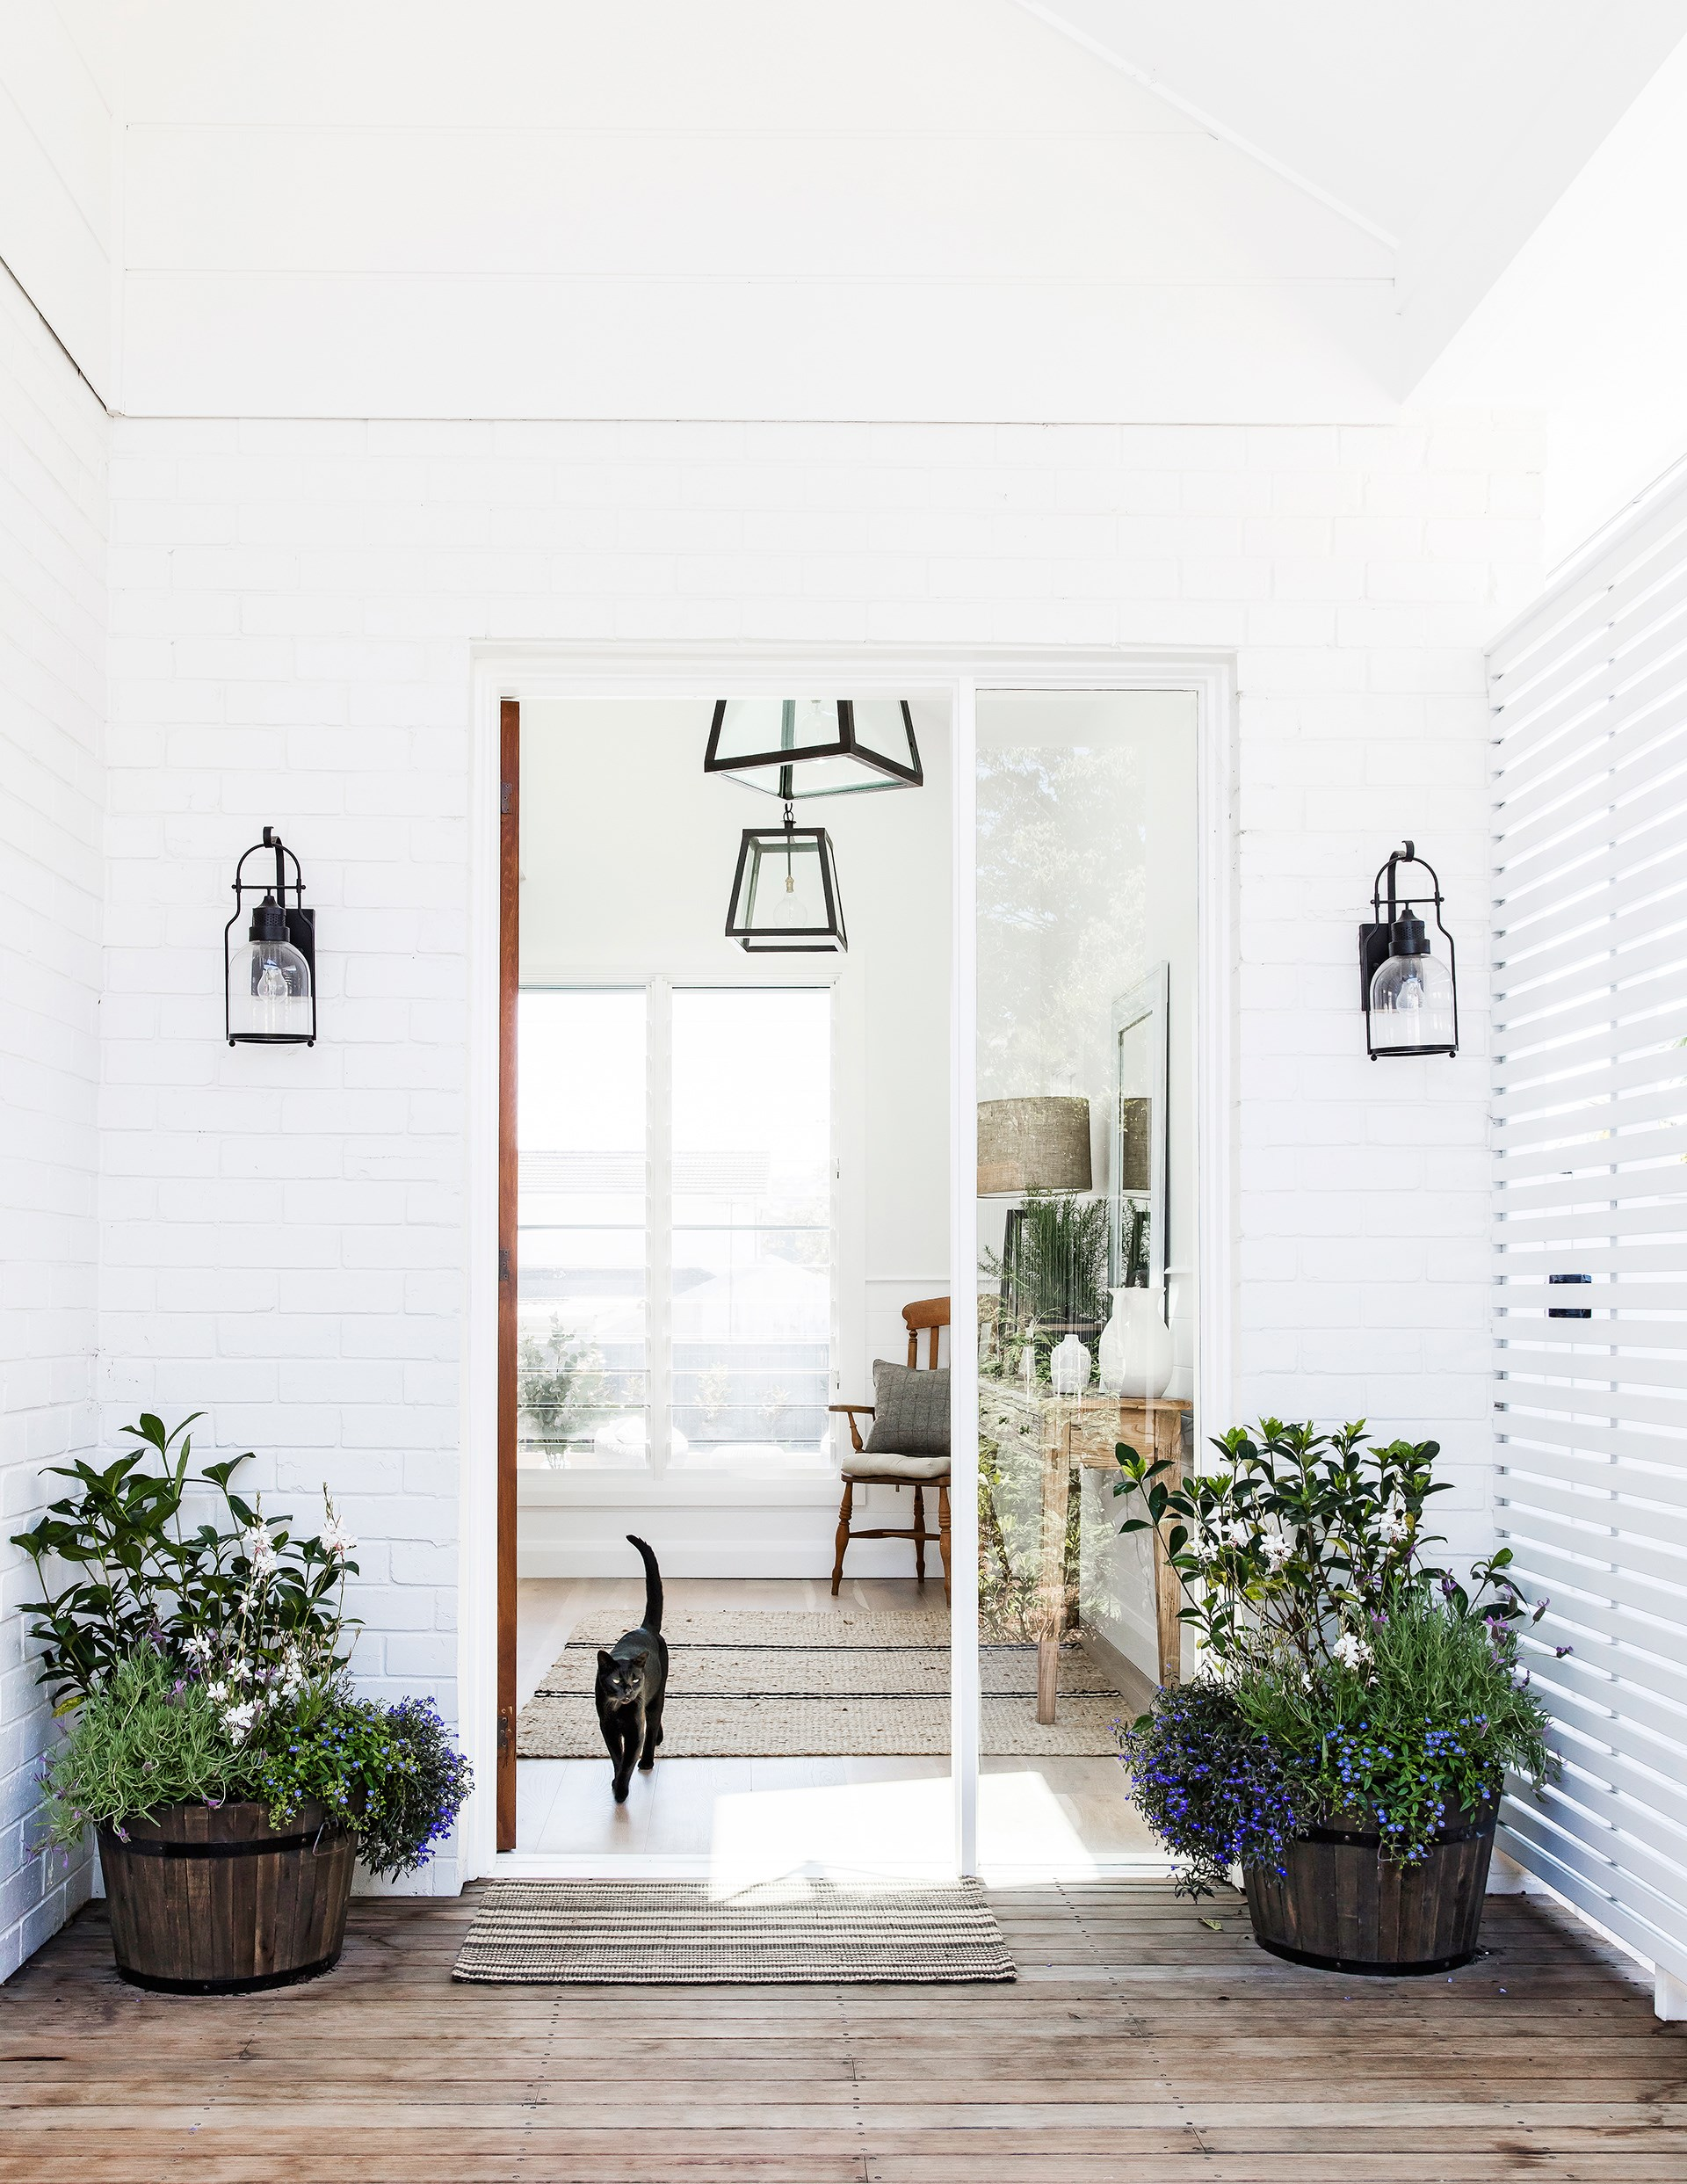 """Unhappy with the original side entrance, Anna requested that Adam Hobbs of [Hobbs Jamieson Architecture](http://hobbsjamieson.com.au/?utm_campaign=supplier/